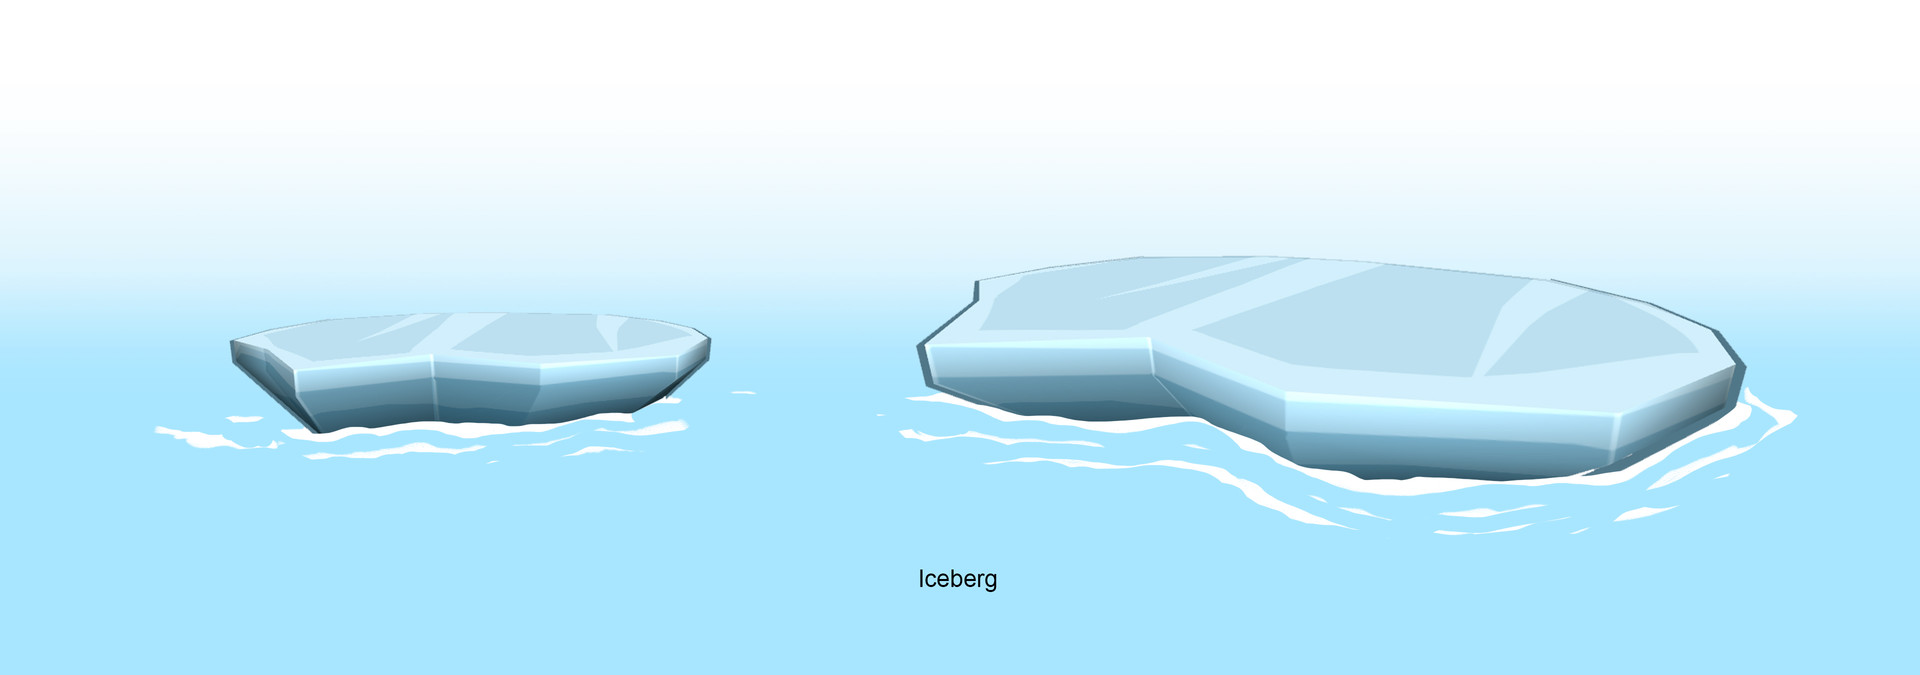 Iceberg Model and texture